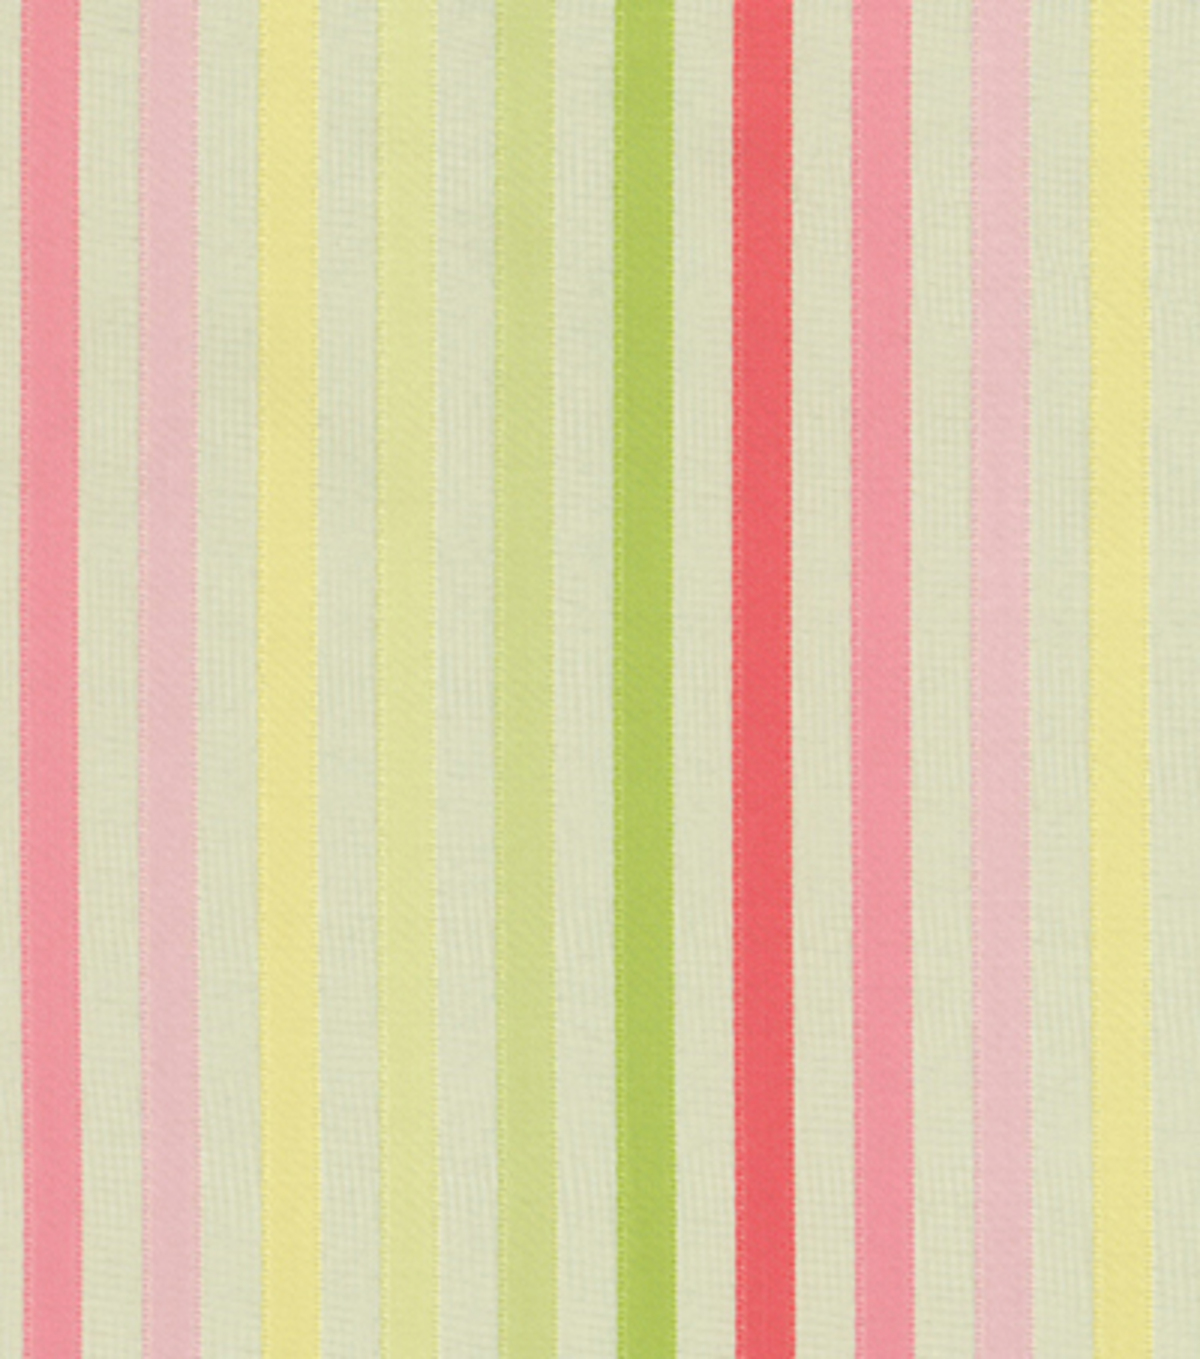 Home Decor 8\u0022x8\u0022 Fabric Swatch-Upholstery-Waverly Ribbon Ceremony/Watermelon